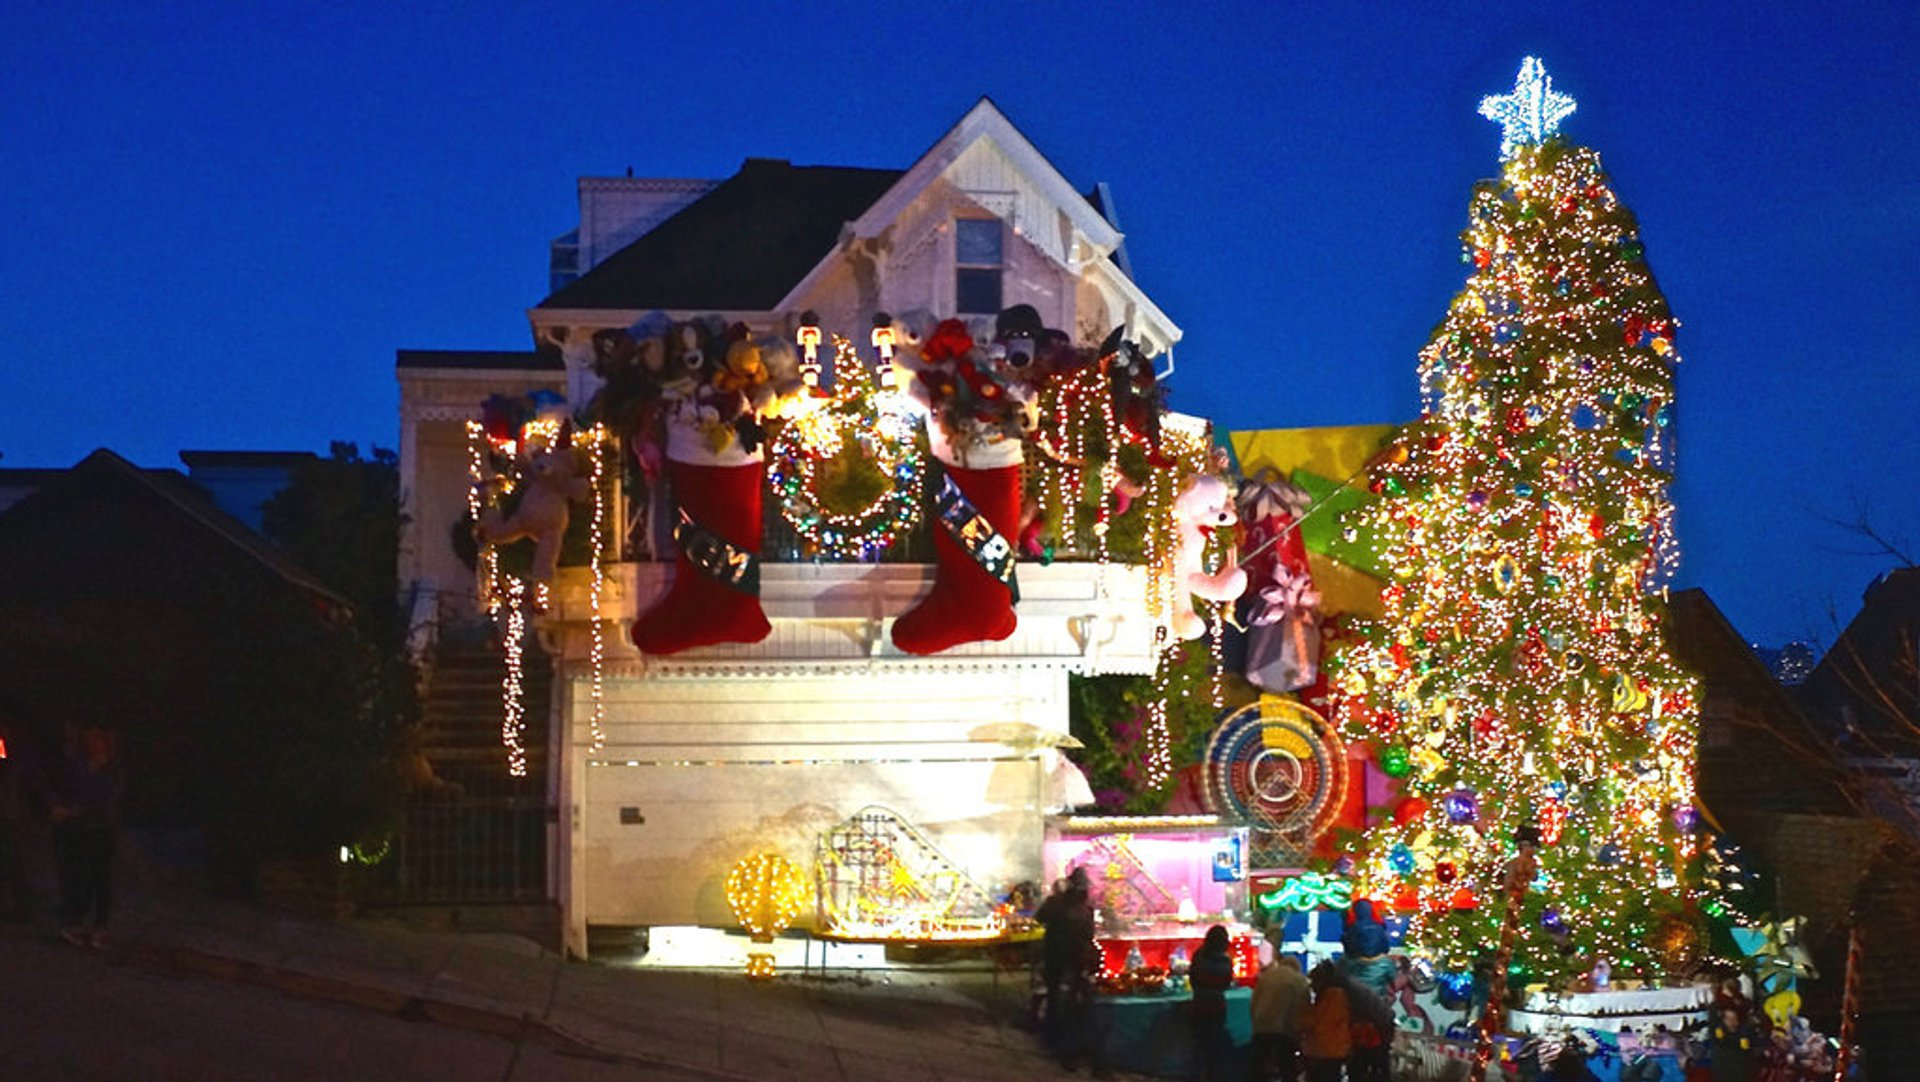 Christmas Lights San Francisco 2020 Christmas Lights 2020 in San Francisco   Dates & Map